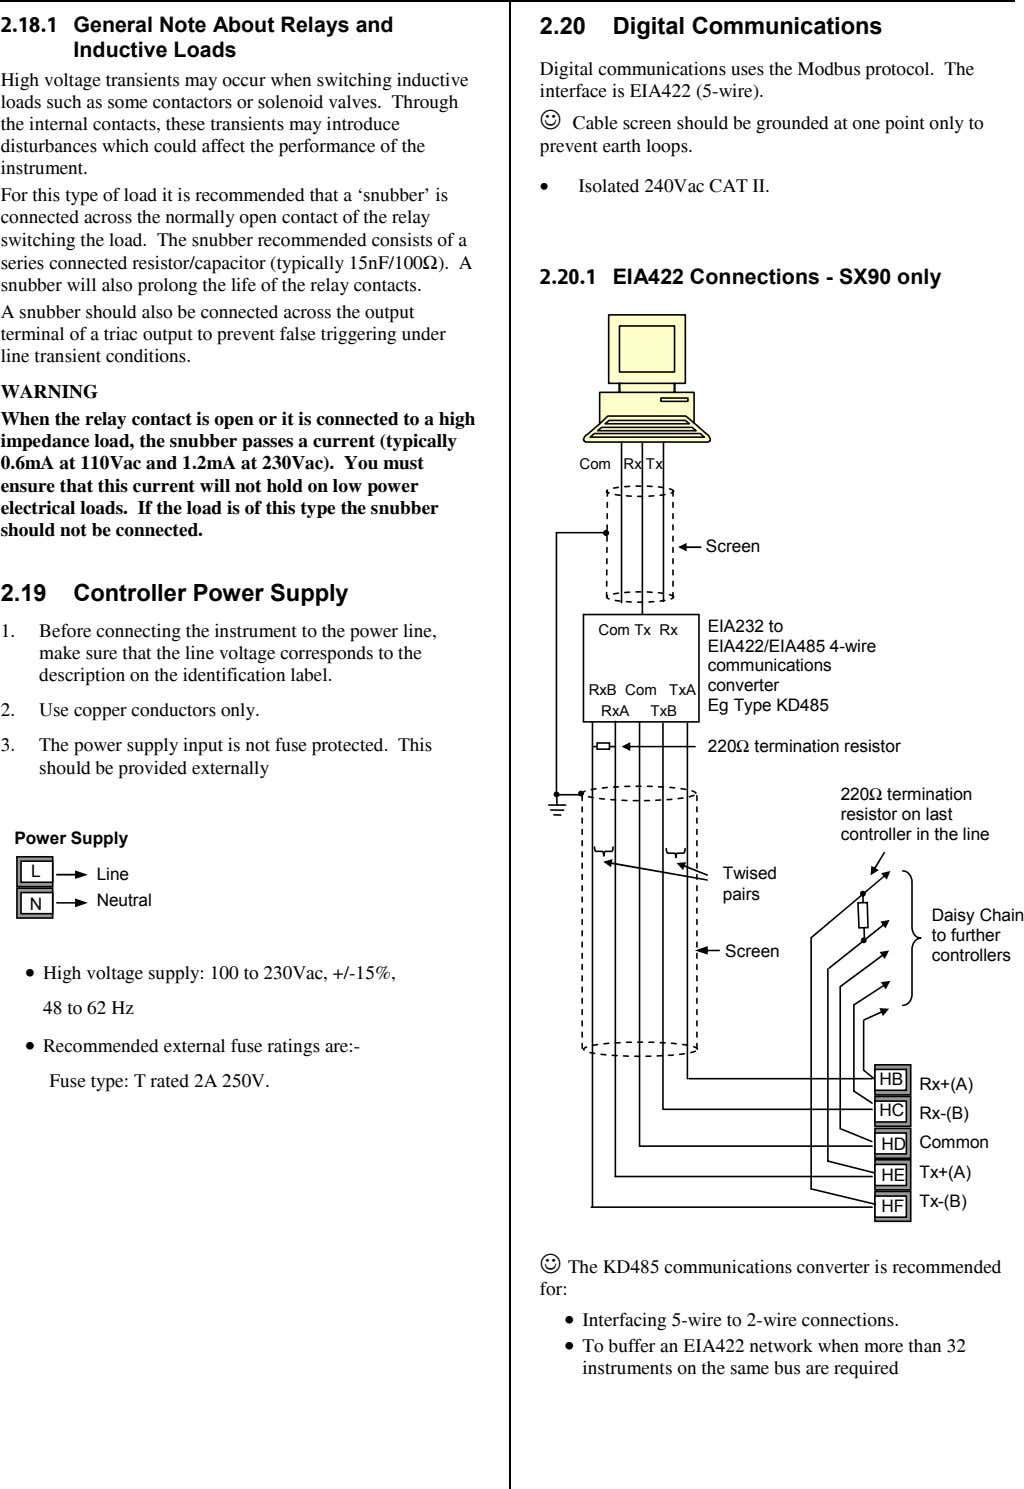 2.18.1 General Note About Relays and Inductive Loads 2.20 Digital Communications High voltage transients may